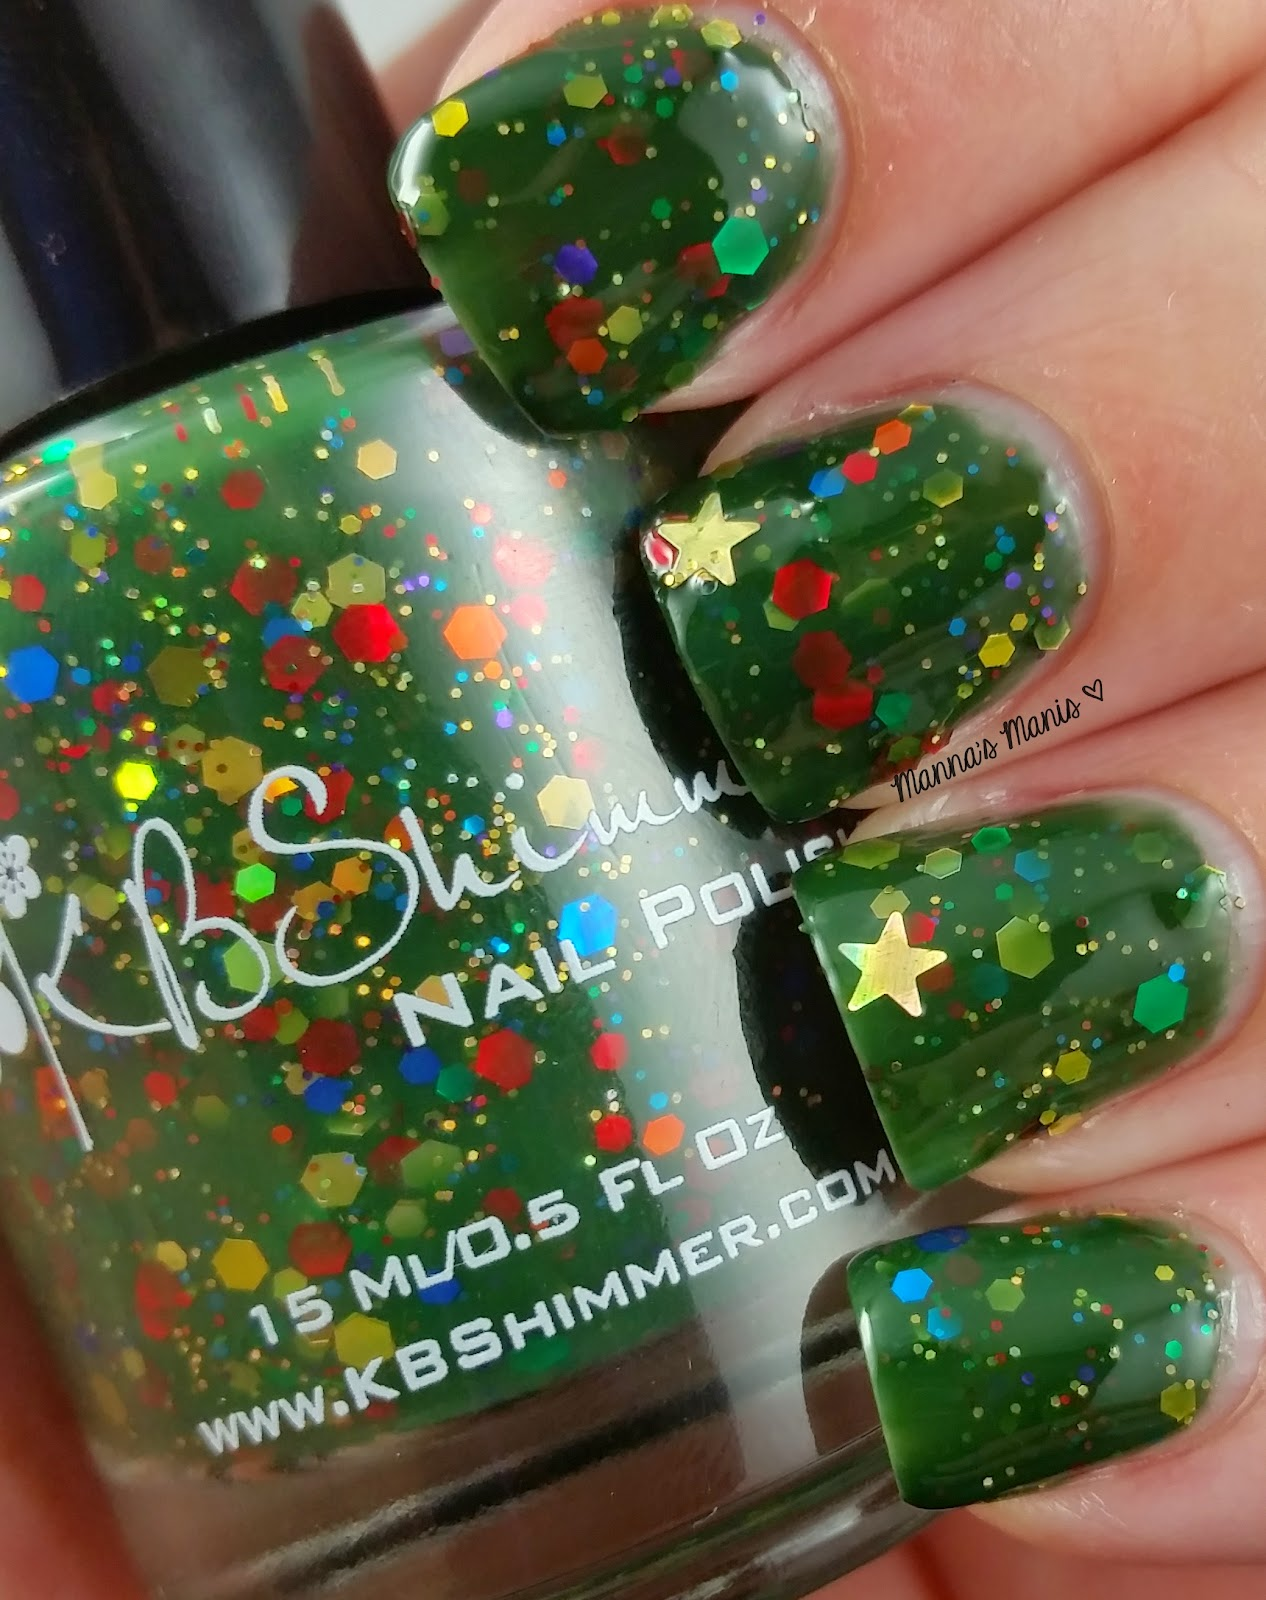 kbshimmer all decked out, a green jelly nail polish